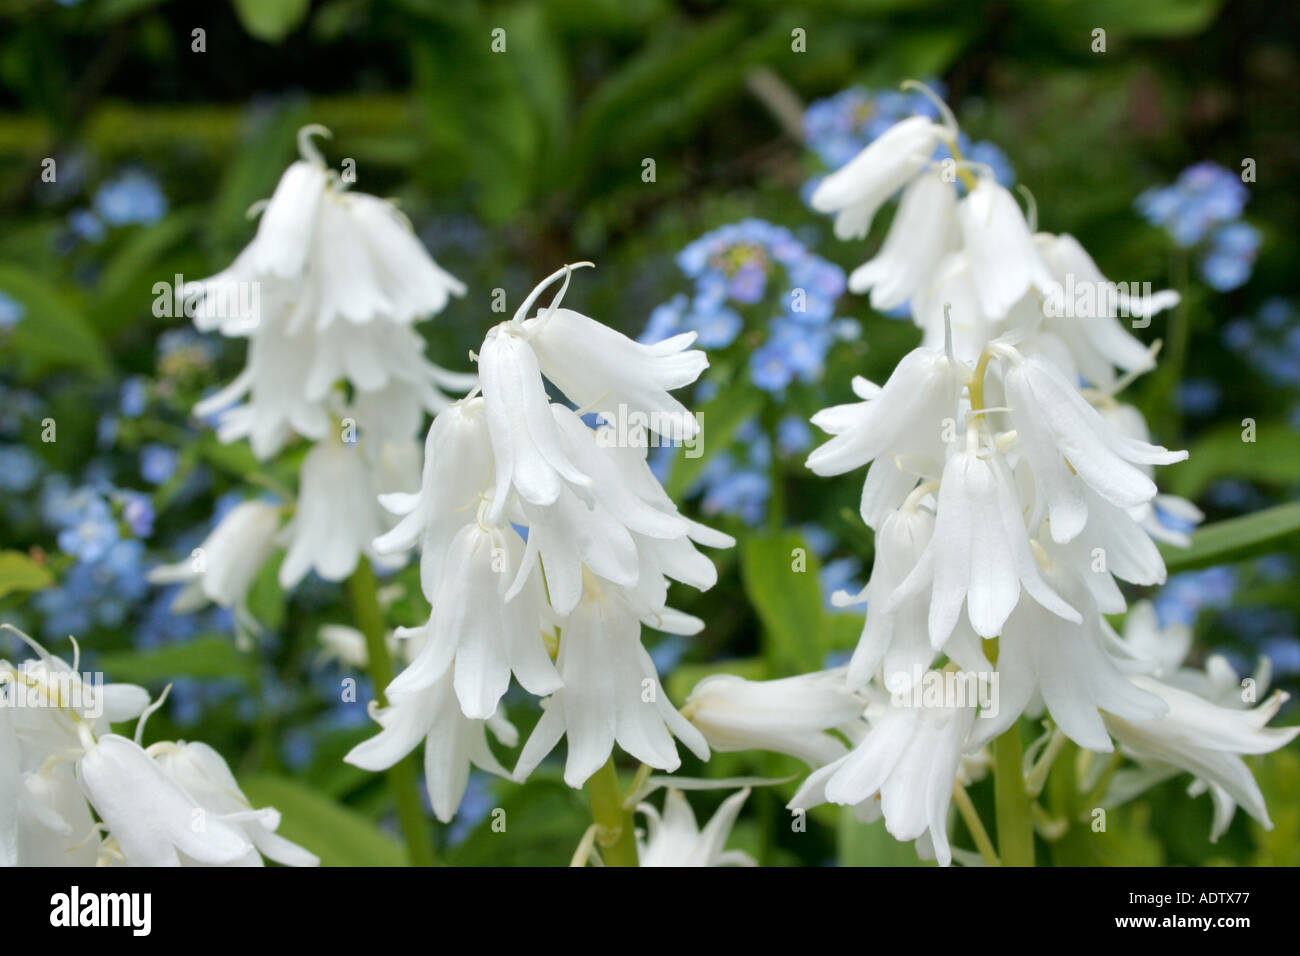 Bluebell wild hyacinth endymion nonscriptus stock photos bluebell white bluebell flowers white variety of wild hyacinth or endymion non scriptus stock image mightylinksfo